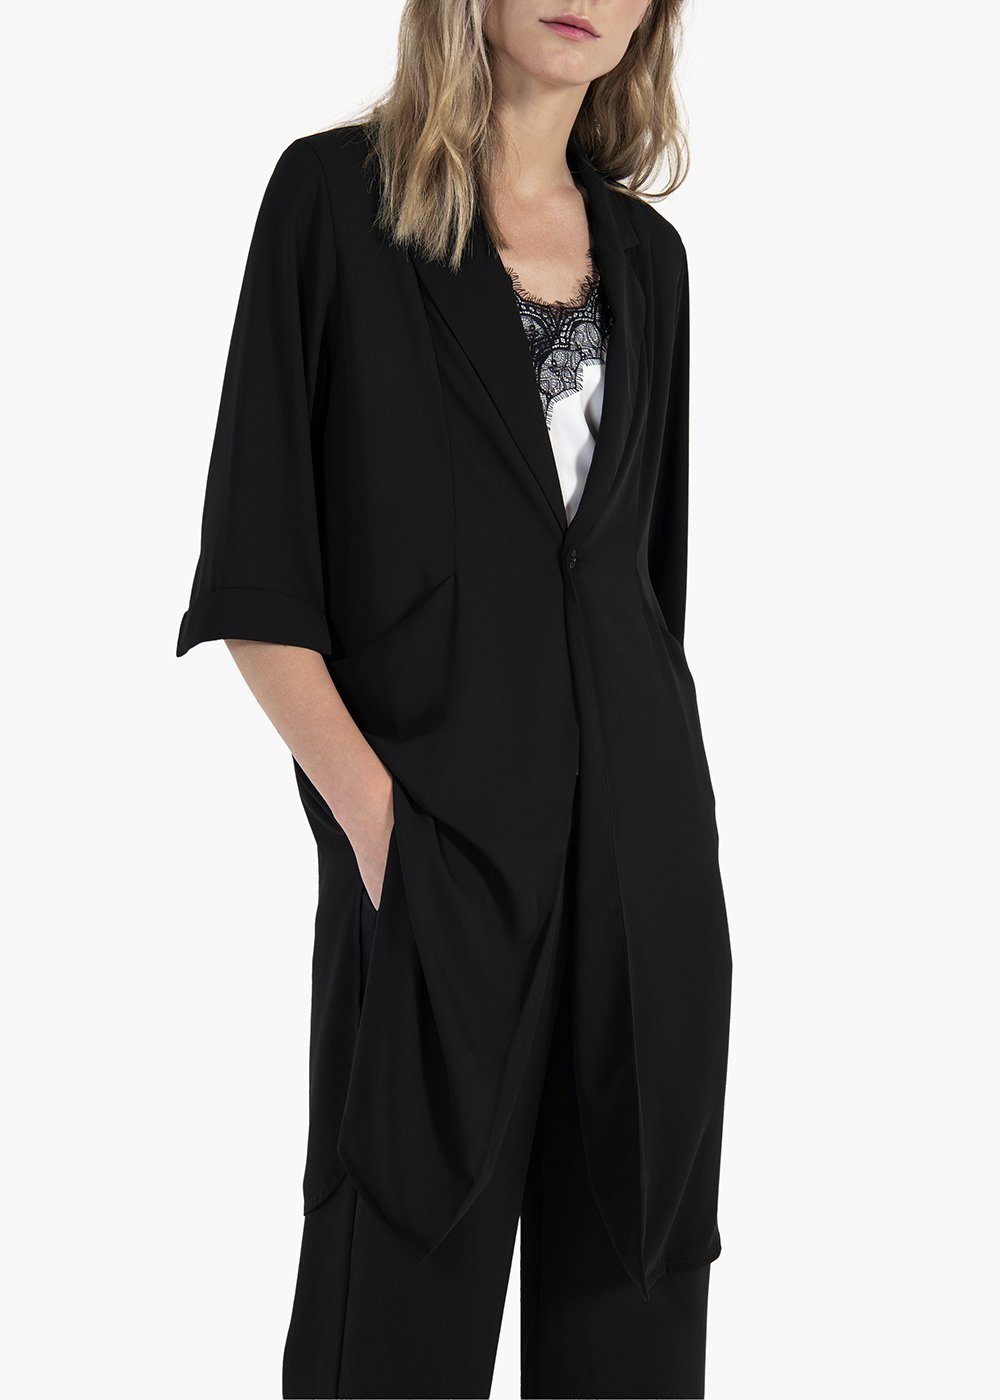 Clizia chemisier with single button and pockets - Black - Woman